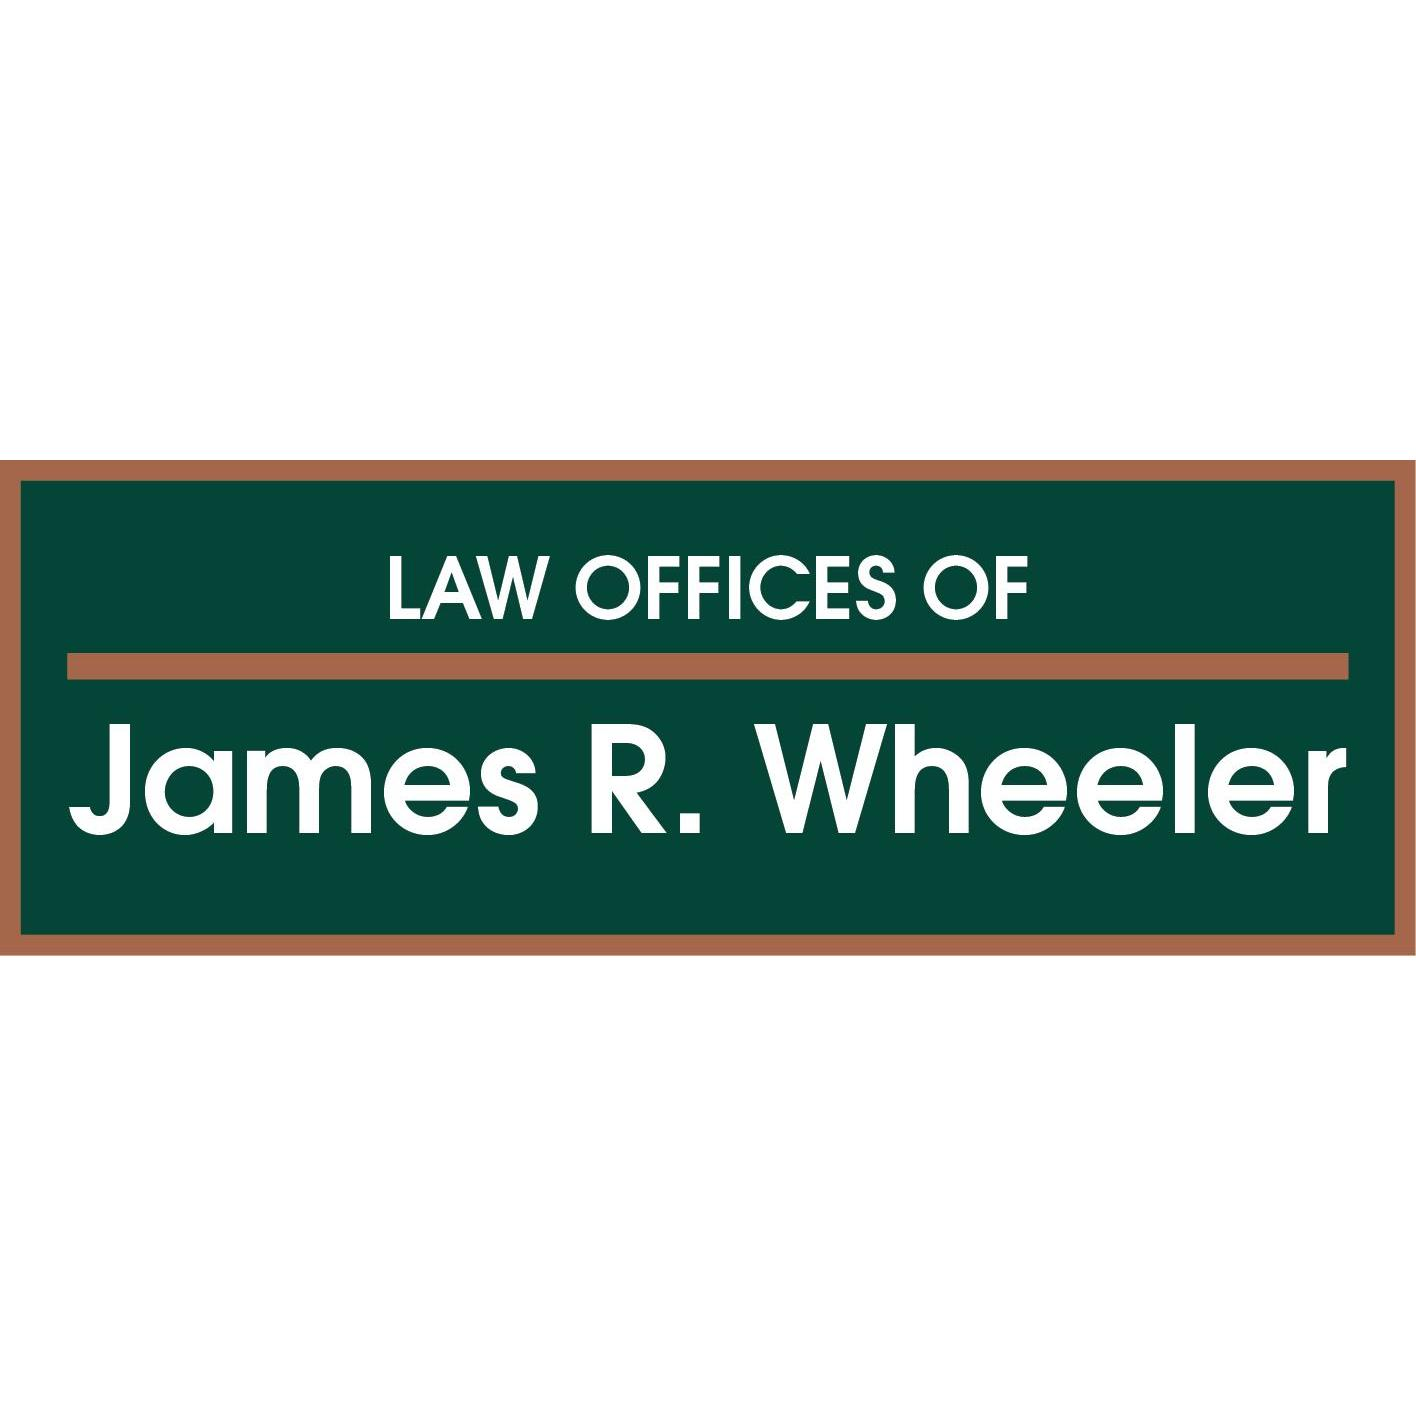 Law Offices of James R. Wheeler